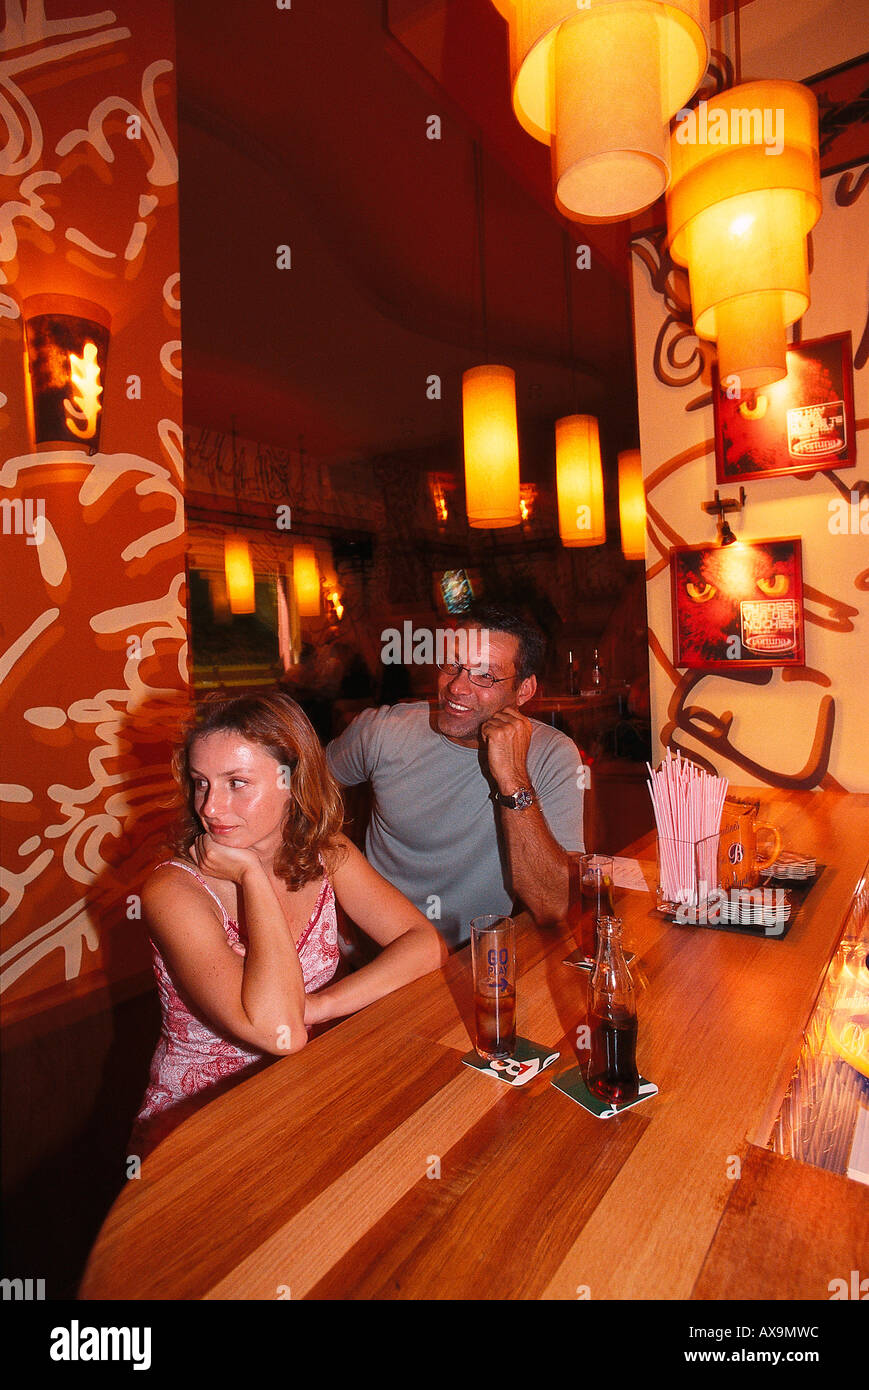 Buho Bar, La Laguna, Tenerife, Canary Island Spain - Stock Image